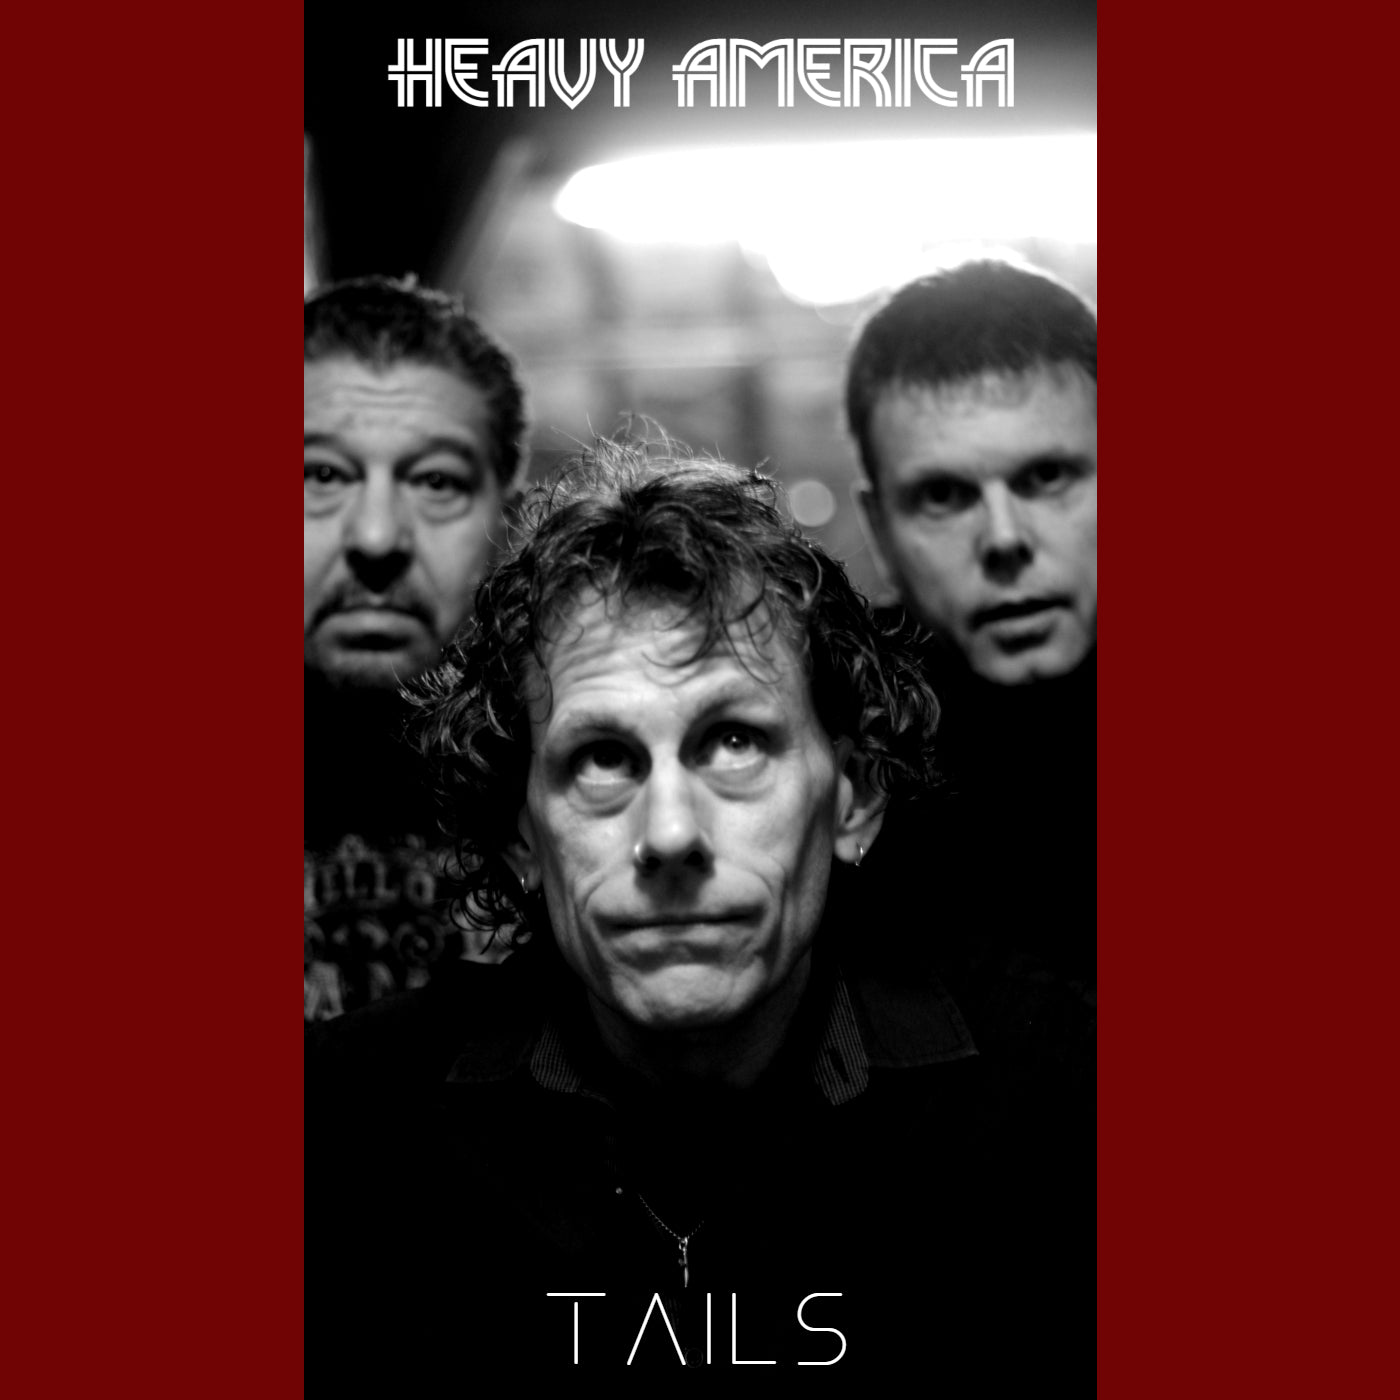 Heavy AmericA – 'Tails'